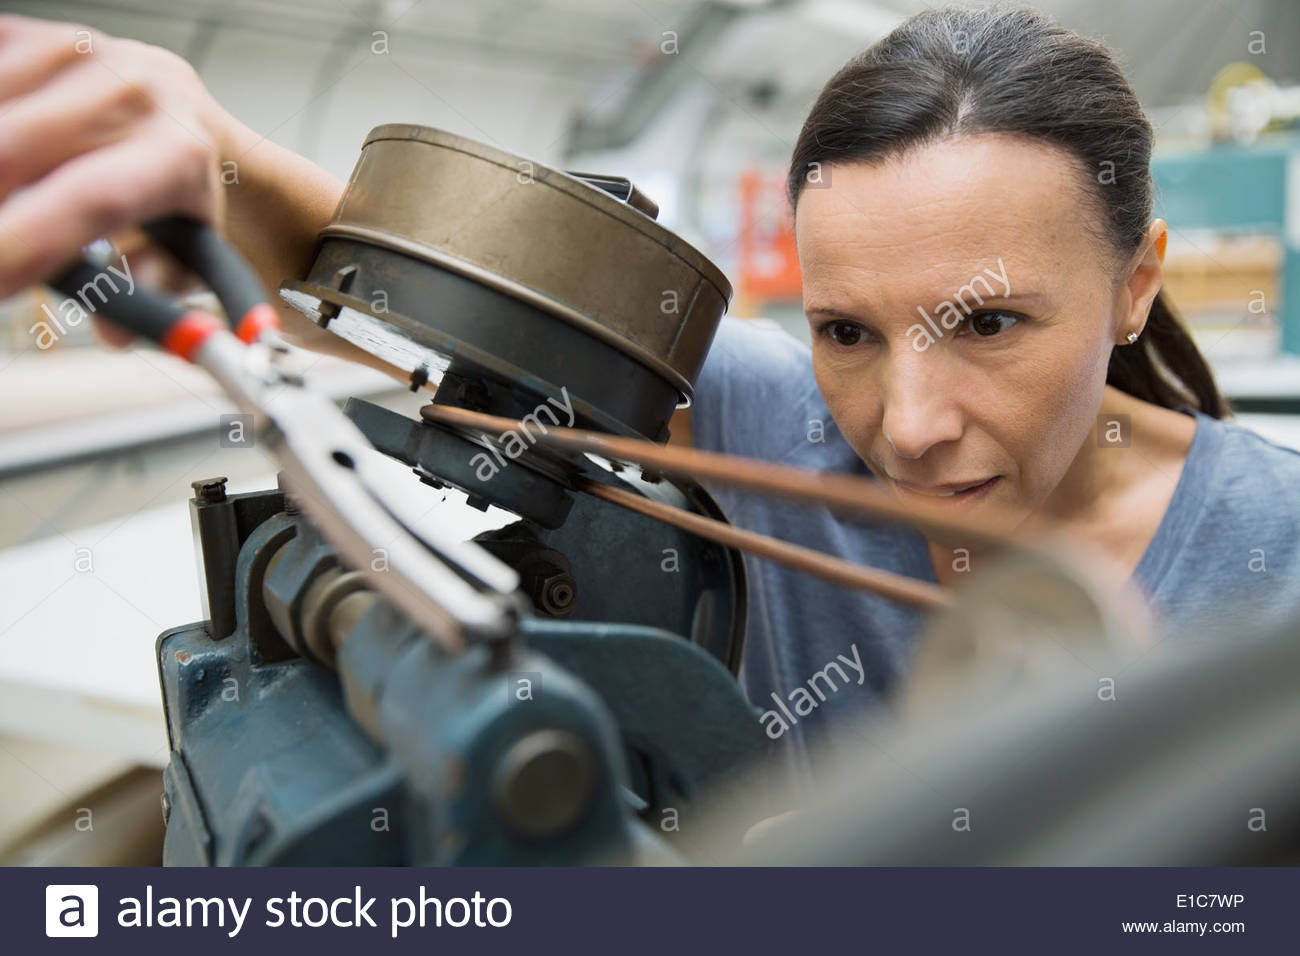 Worker using machinery in textile manufacturing plant - Stock Image